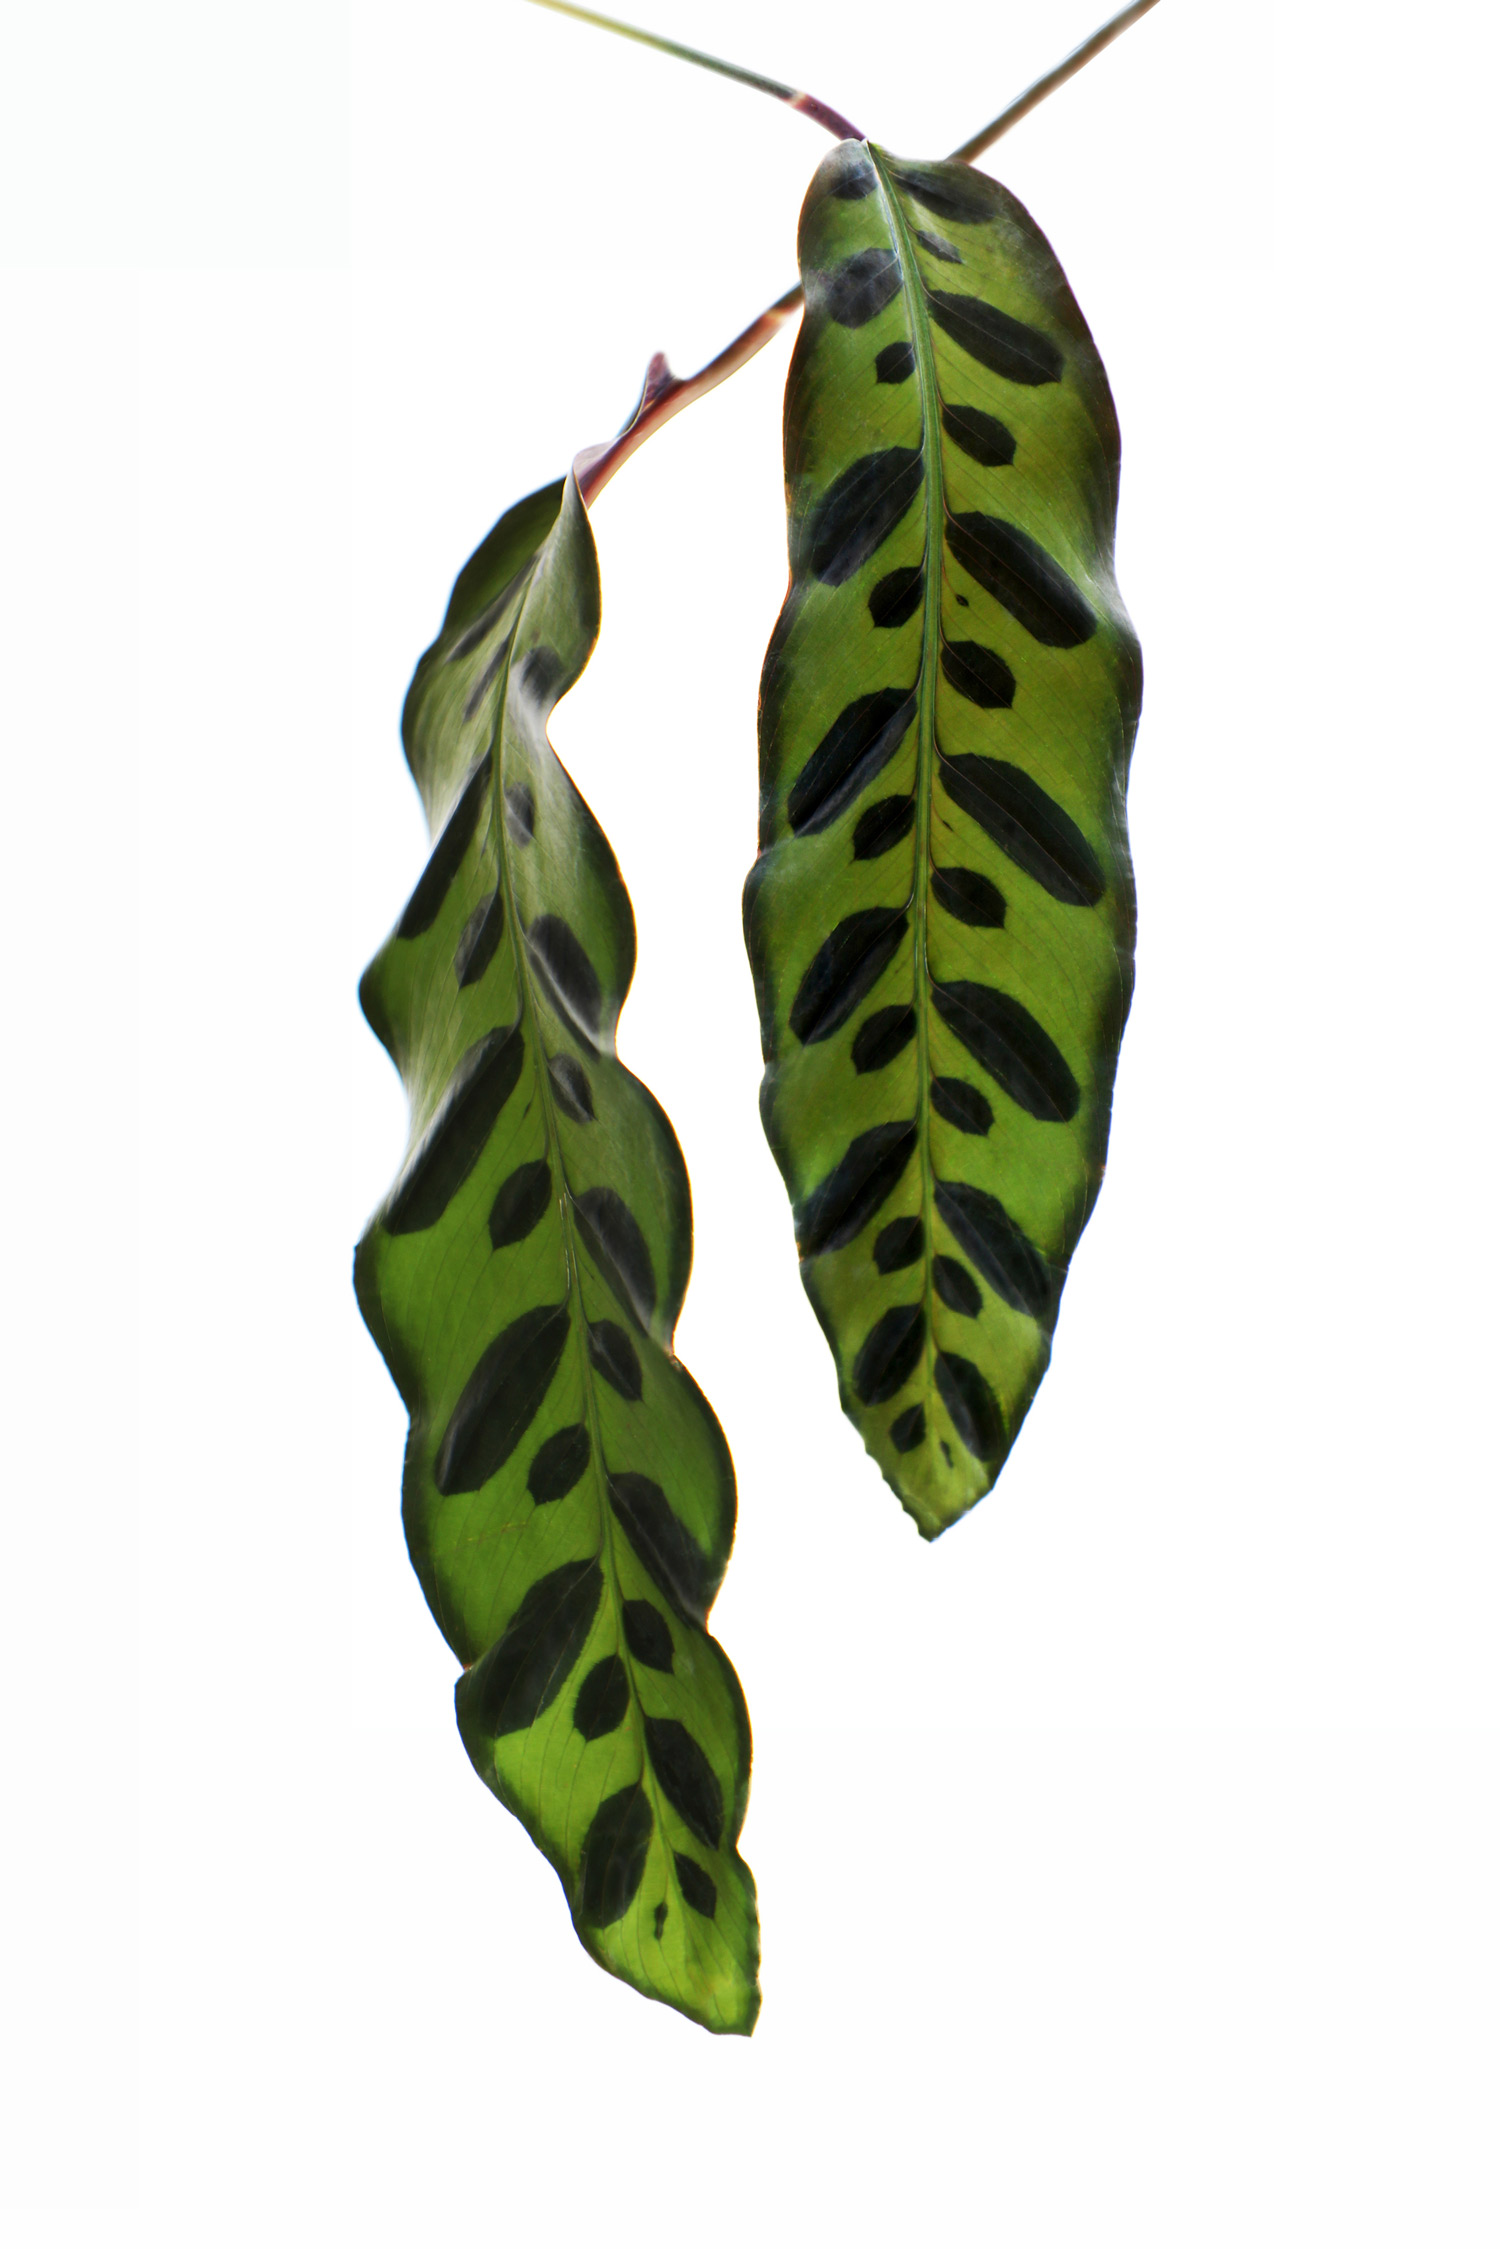 leaves within a leaf